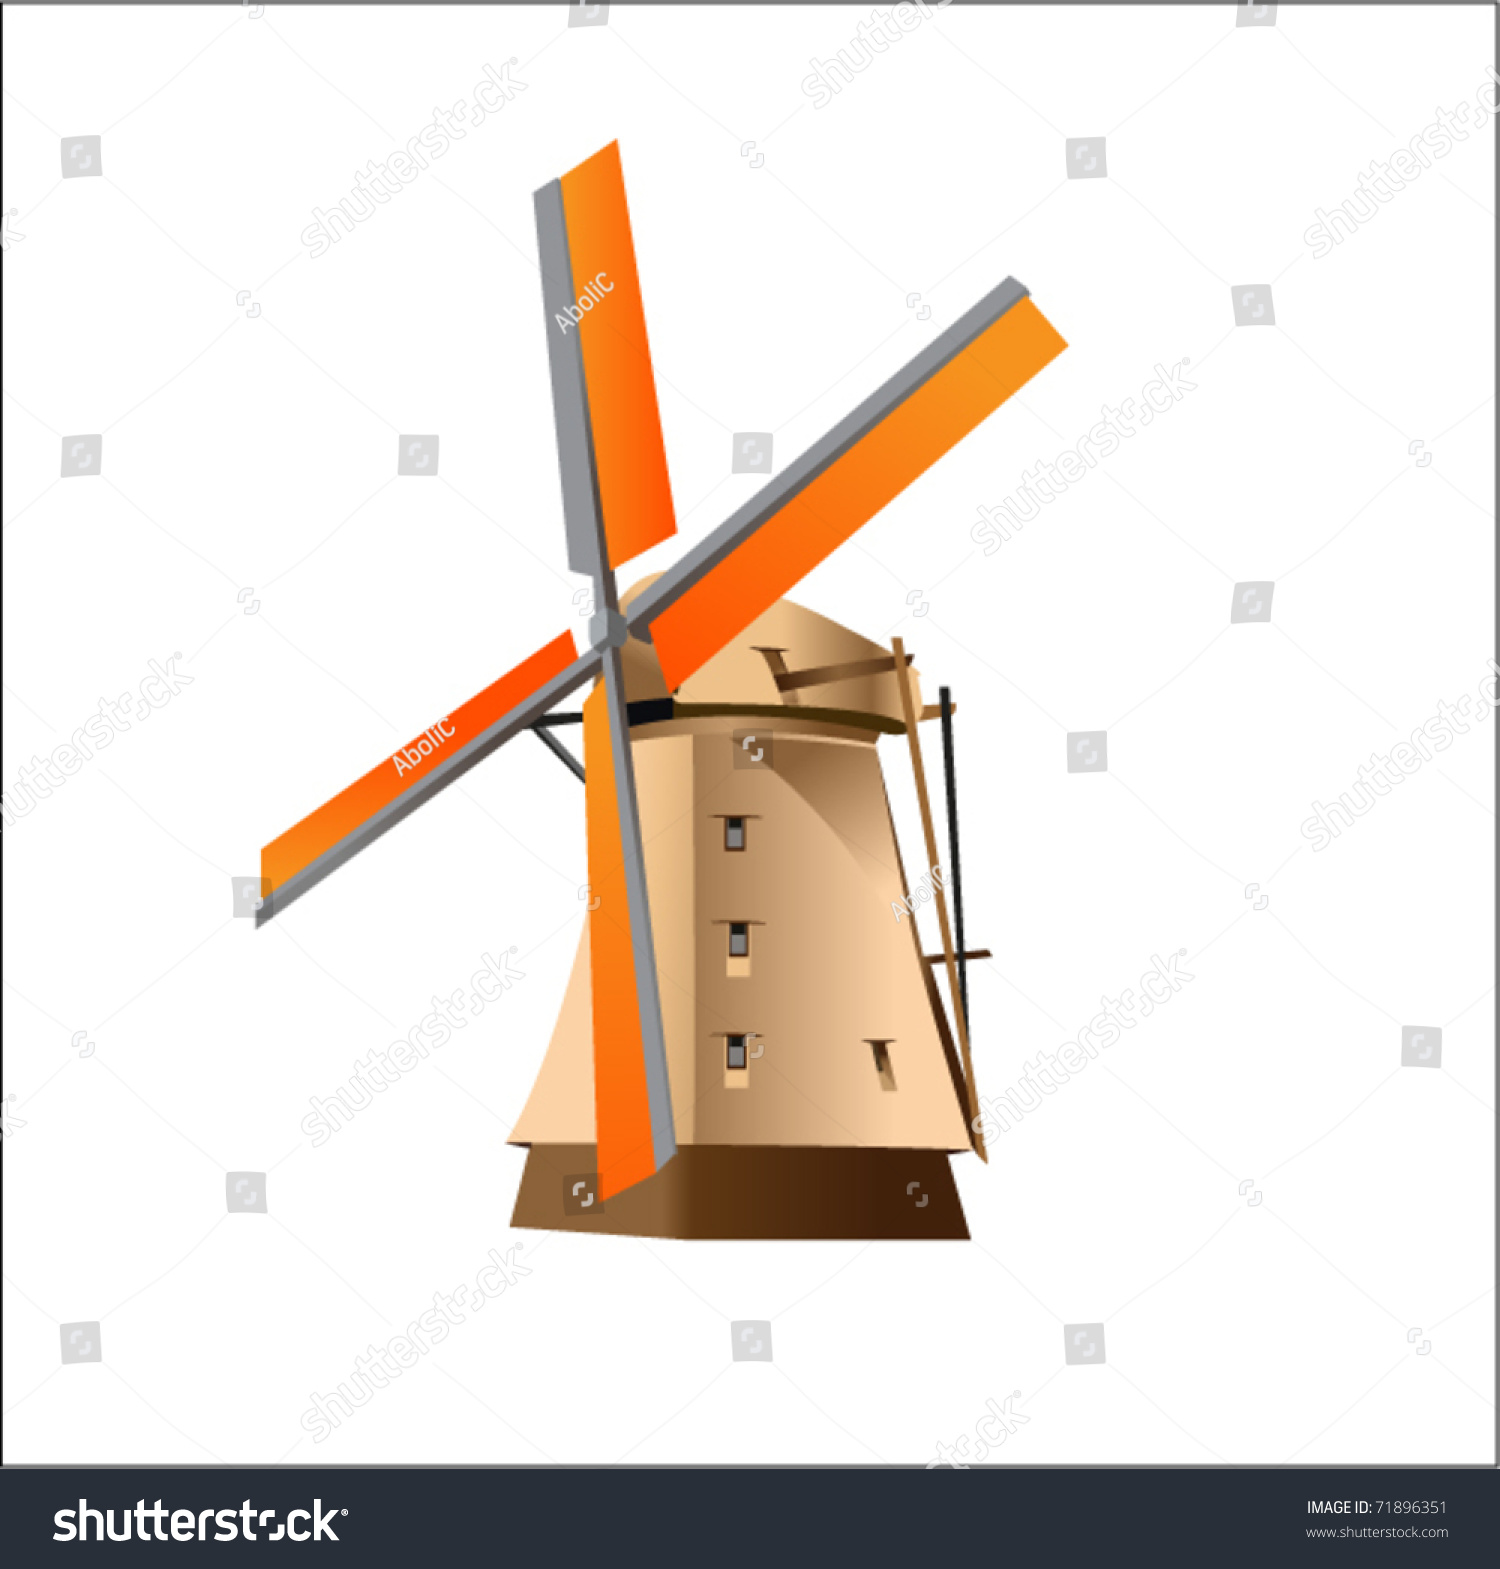 Dutch Windmill Stock Vector 71896351 - Shutterstock